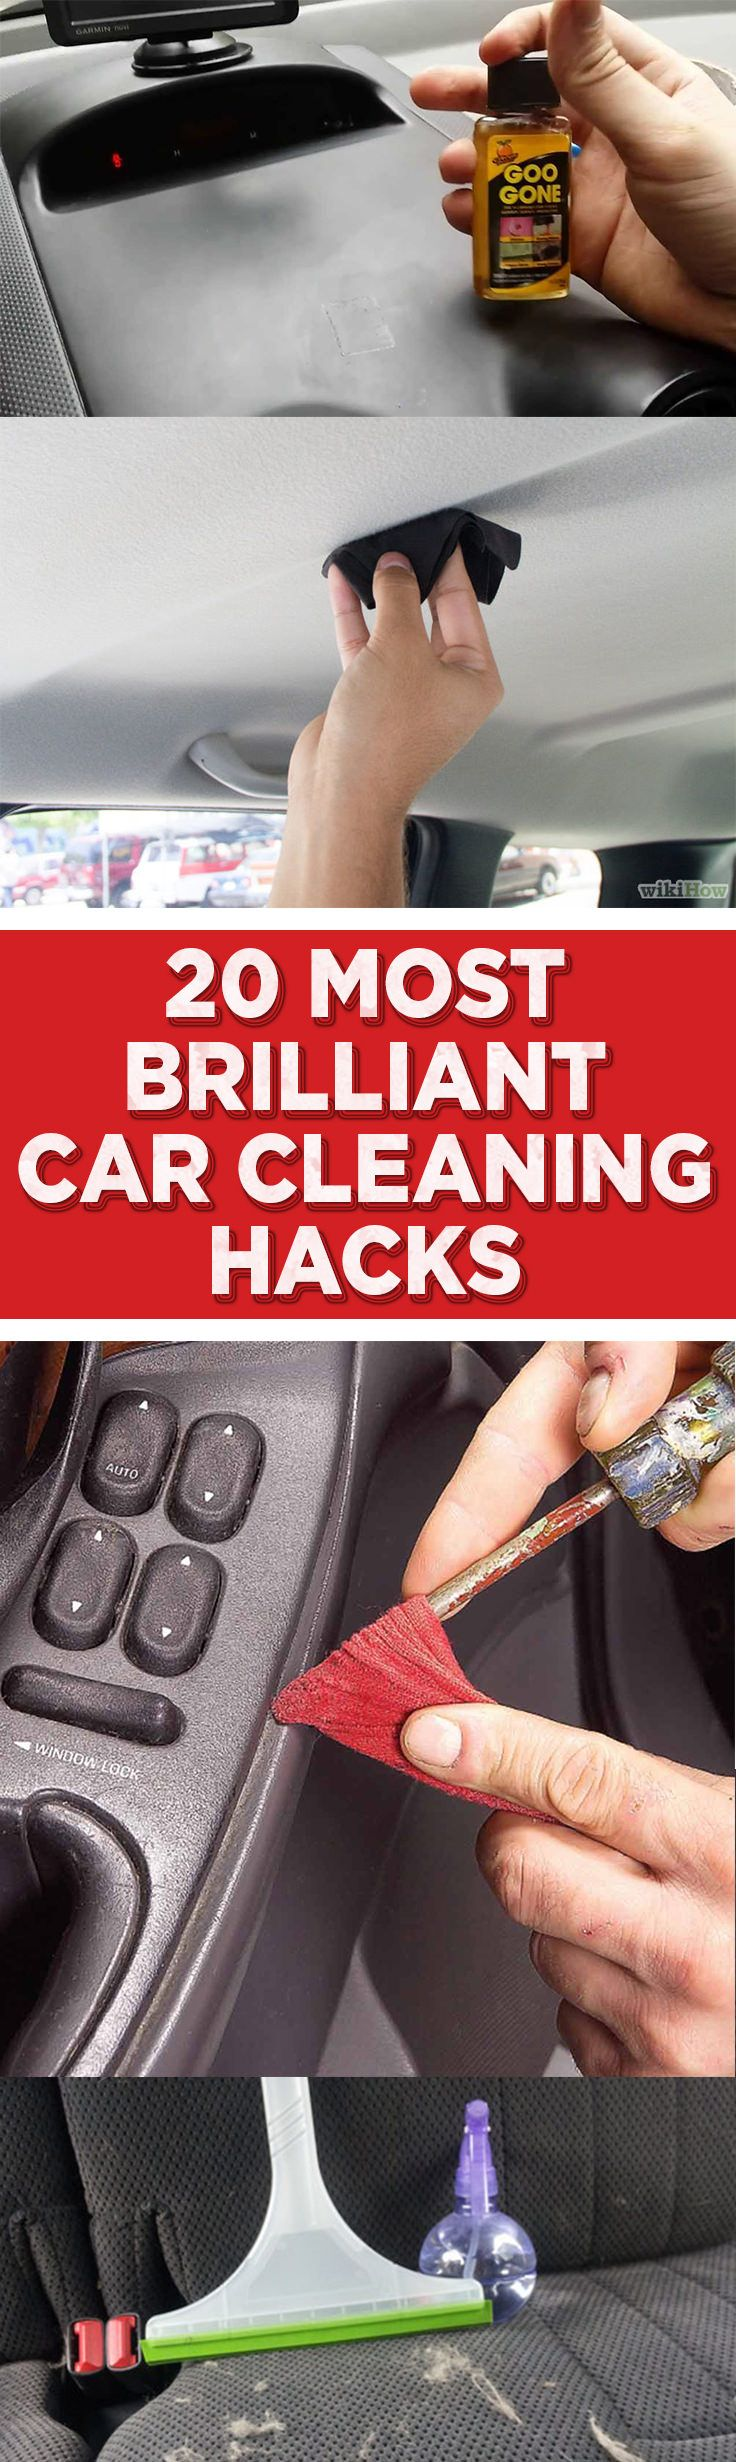 Cleaning up your favorite car is important but it must not be time-consuming and difficult, these some of the most brilliant car cleaning hacks will make it easier.